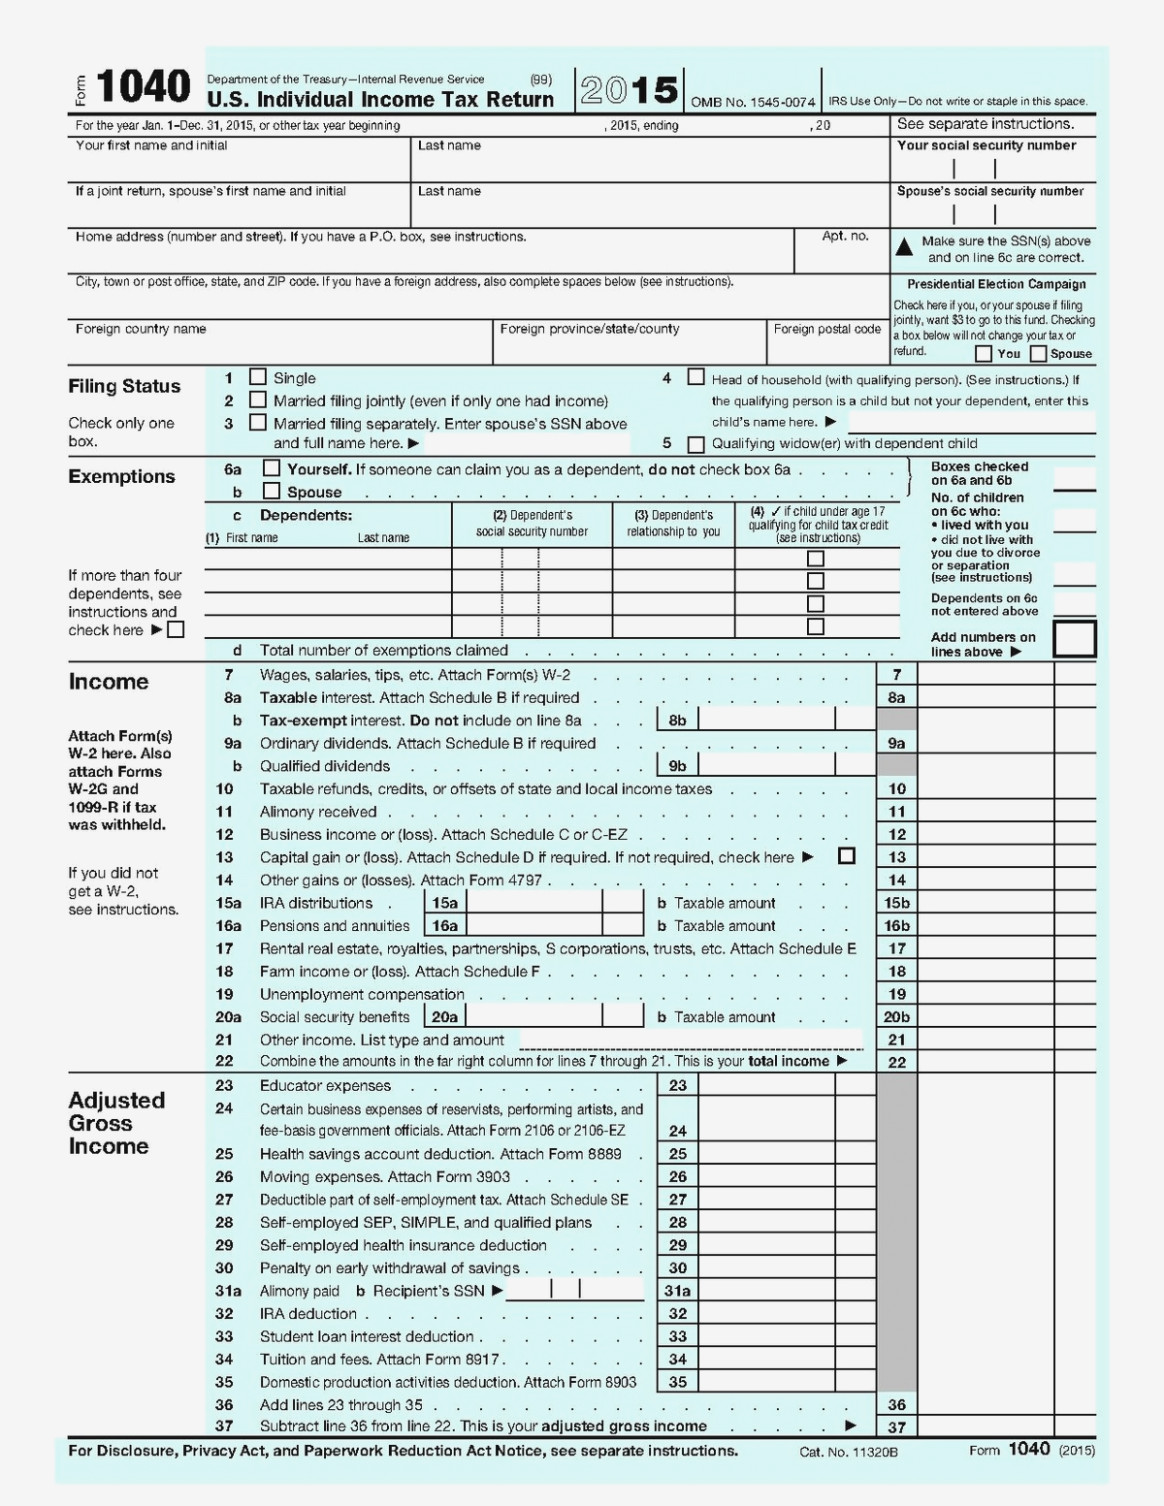 2009 Federal Income Tax Forms 1040